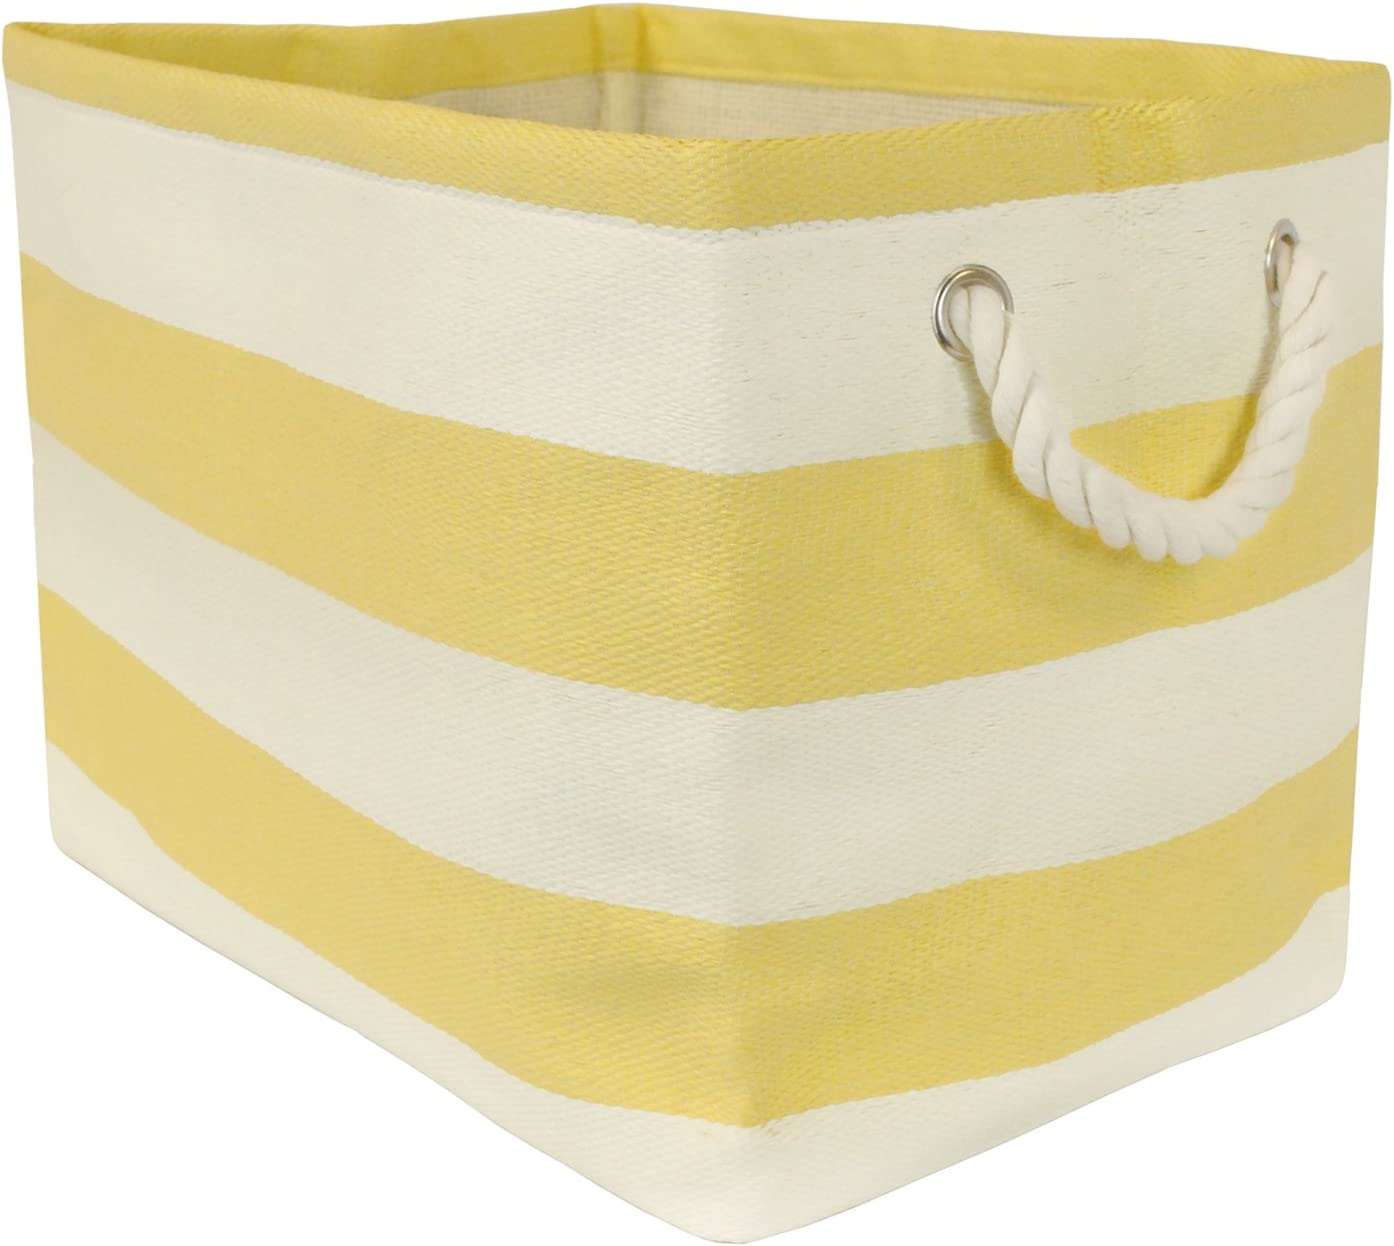 "DII, Woven Paper Storage Bin, Collapsible, 15x10x12"", Rugby Yellow"